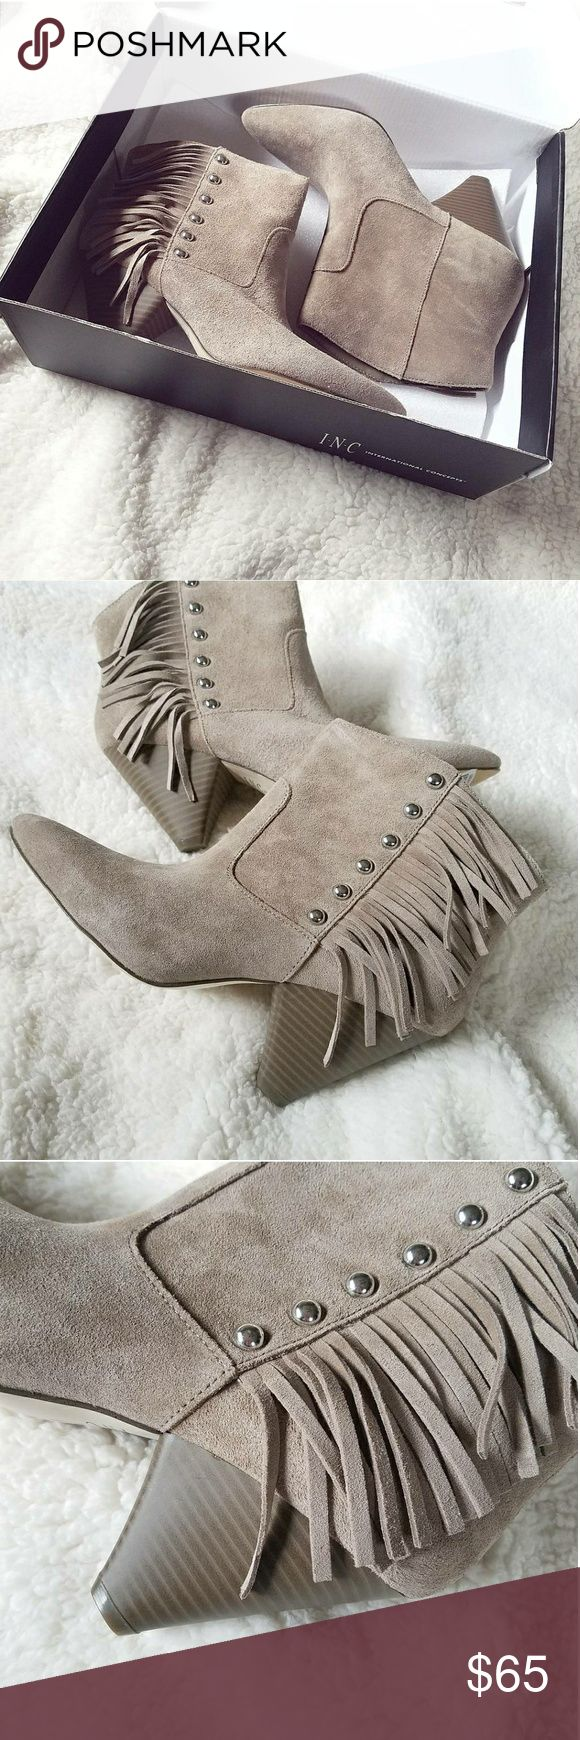 NWB | INC Fringe Booties Brand new in the box! INC Pallavi Taupe Western Booties Genuine leather upper Size 7.5 Taupe suede/fringe Silver decorative studs Cone heel Retail Value: $129.50  Make an offer! INC International Concepts Shoes Ankle Boots & Booties